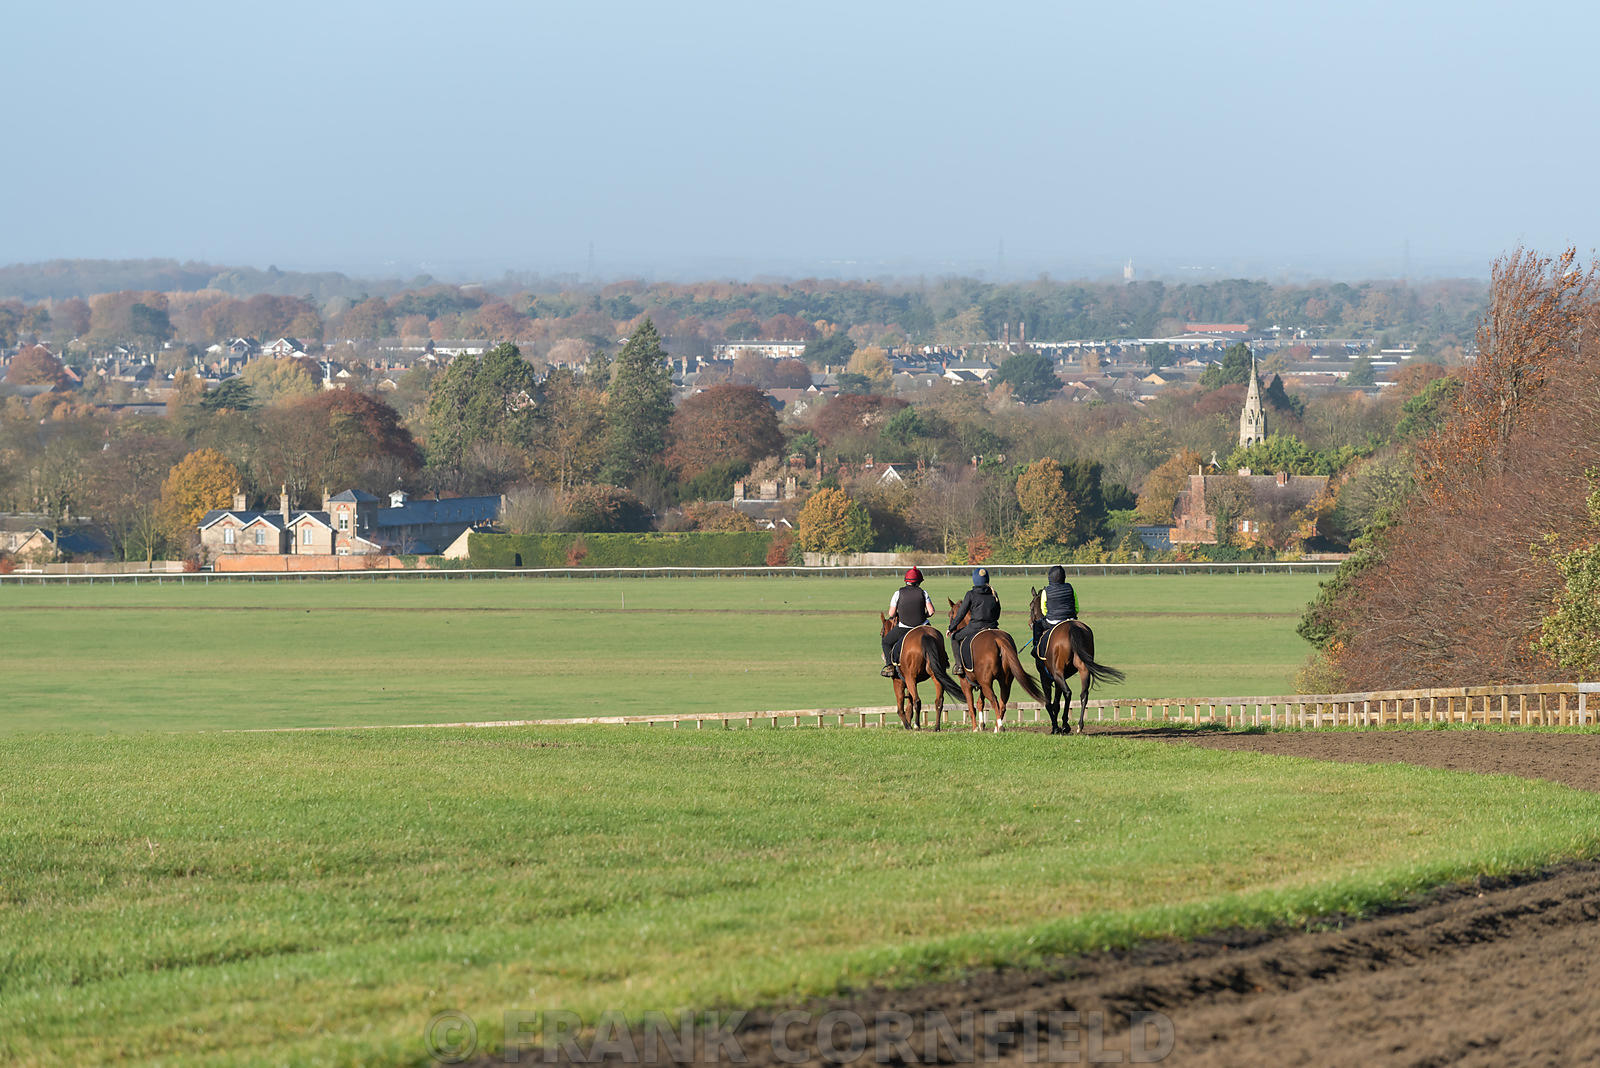 Three horses after working on the Warren Hill racehorse training gallops at Newmarket, England.